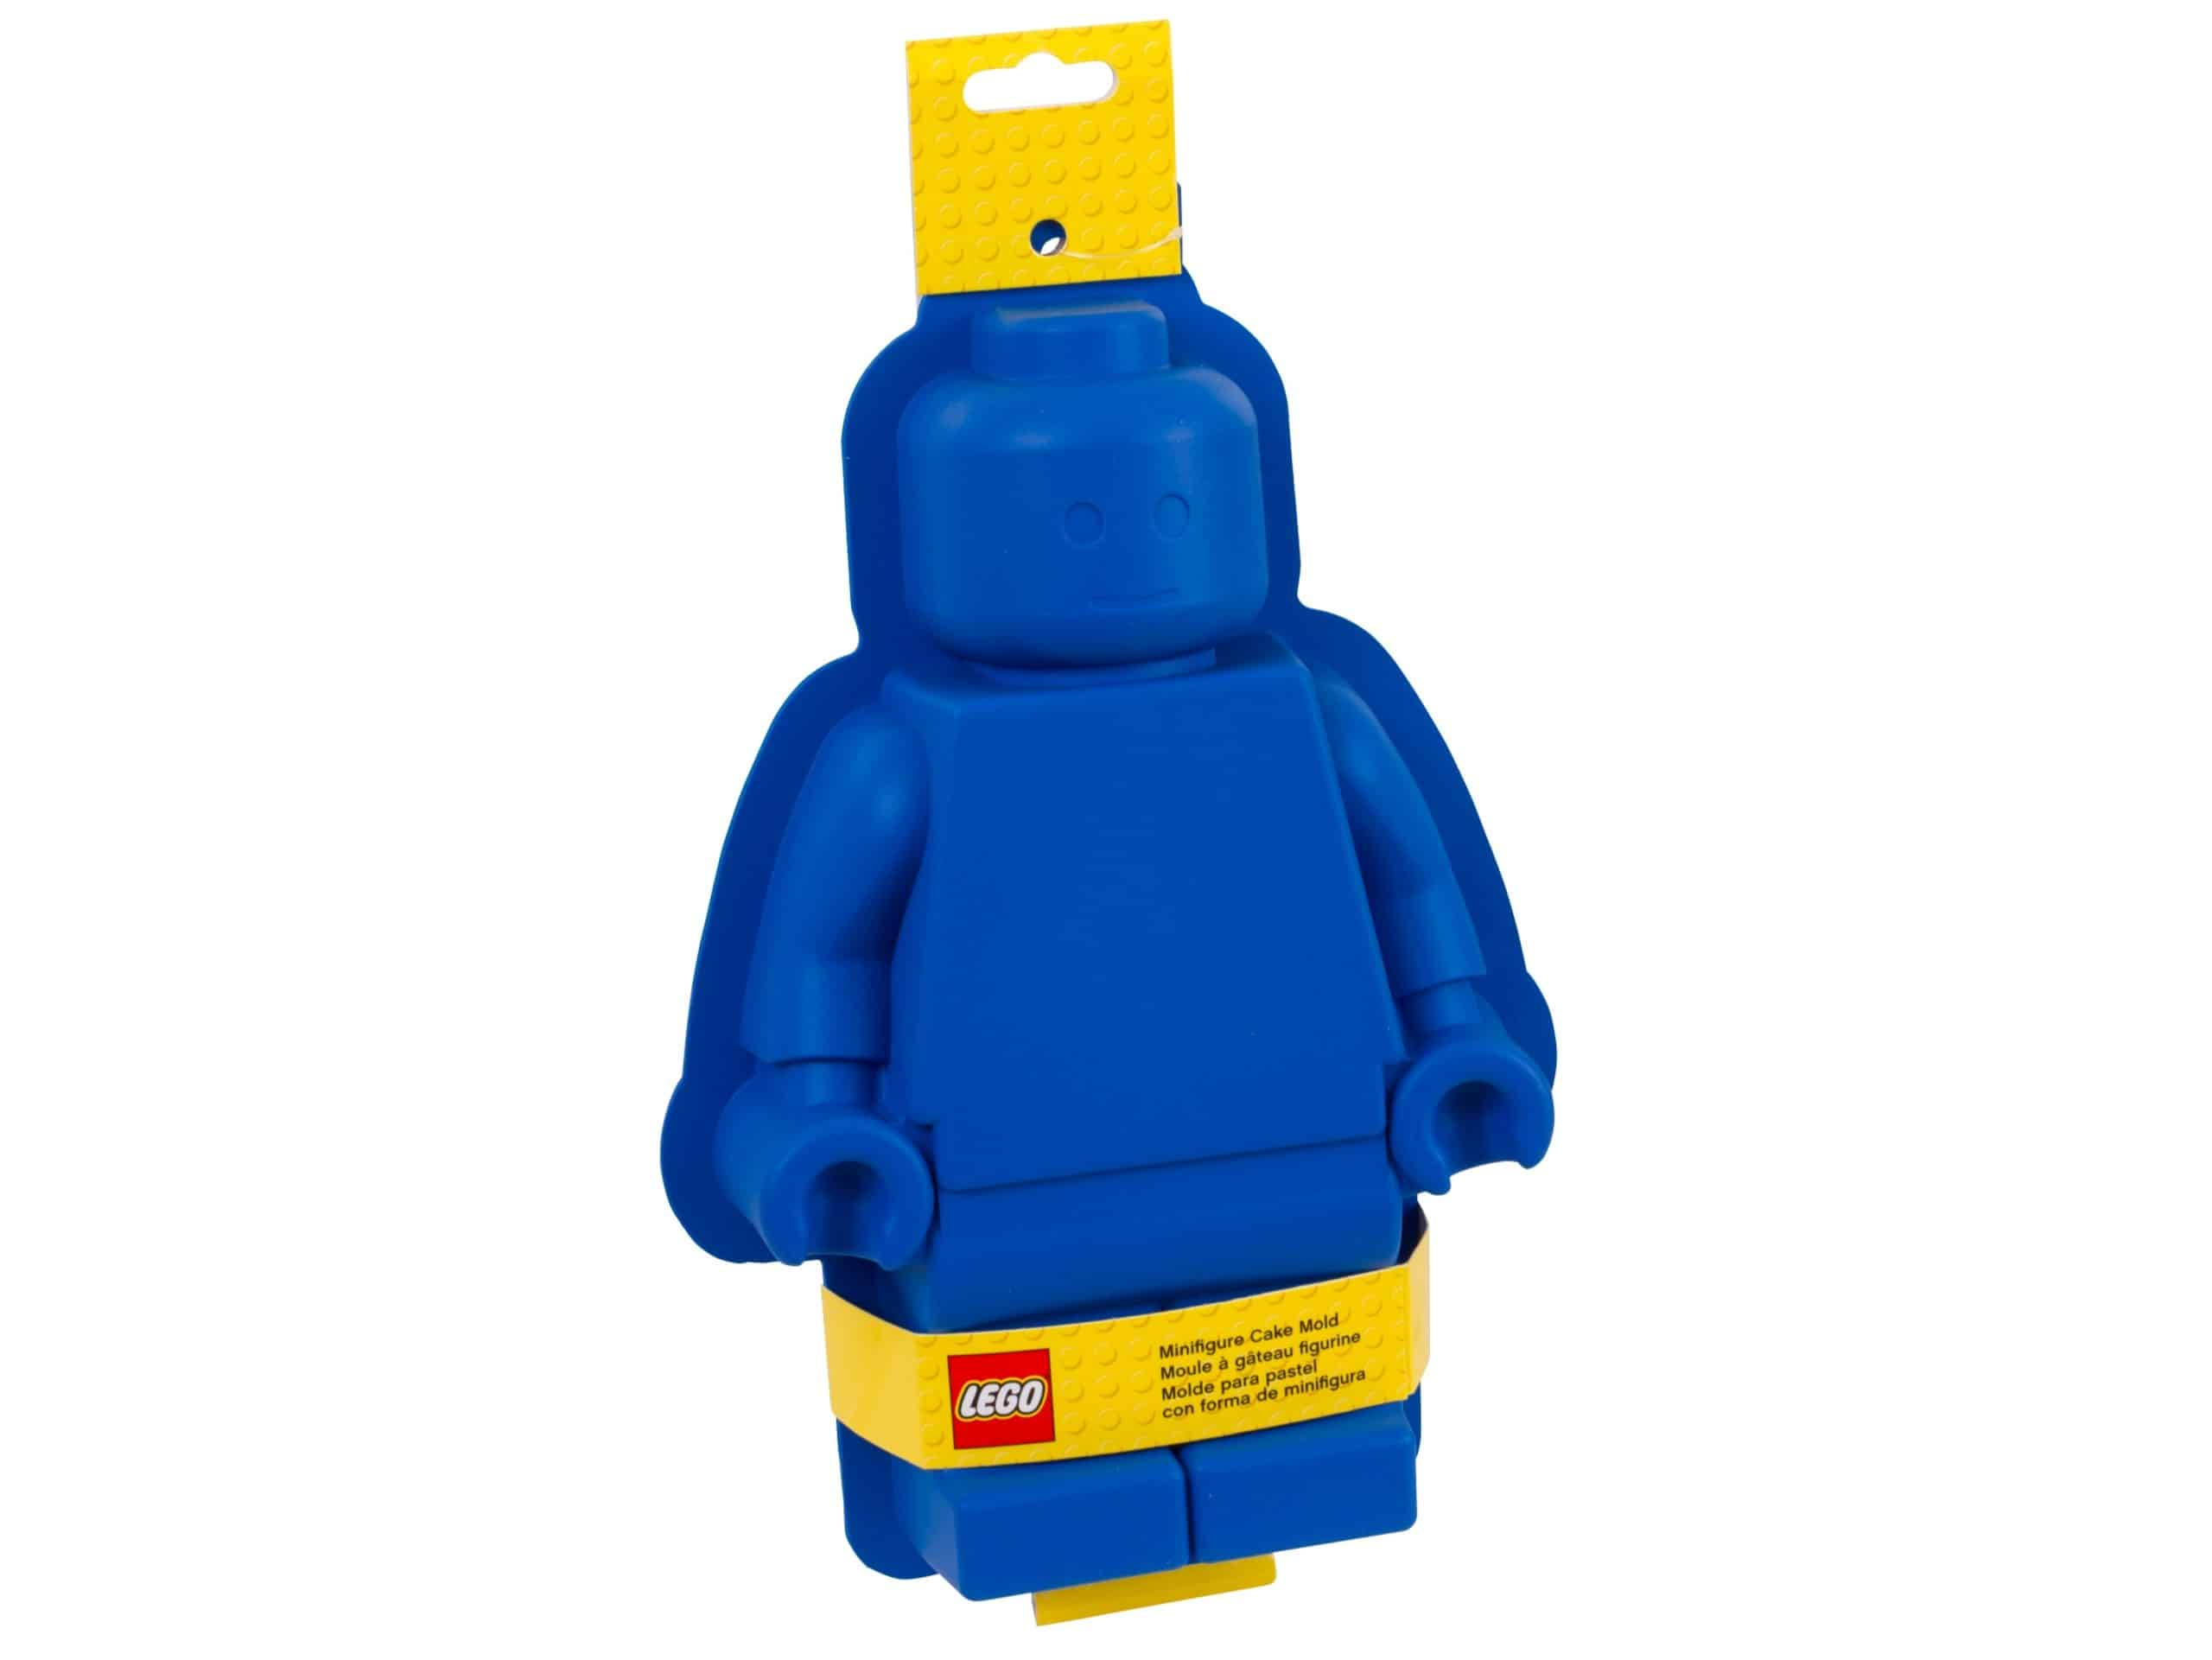 lego 853575 minifigur bageform scaled